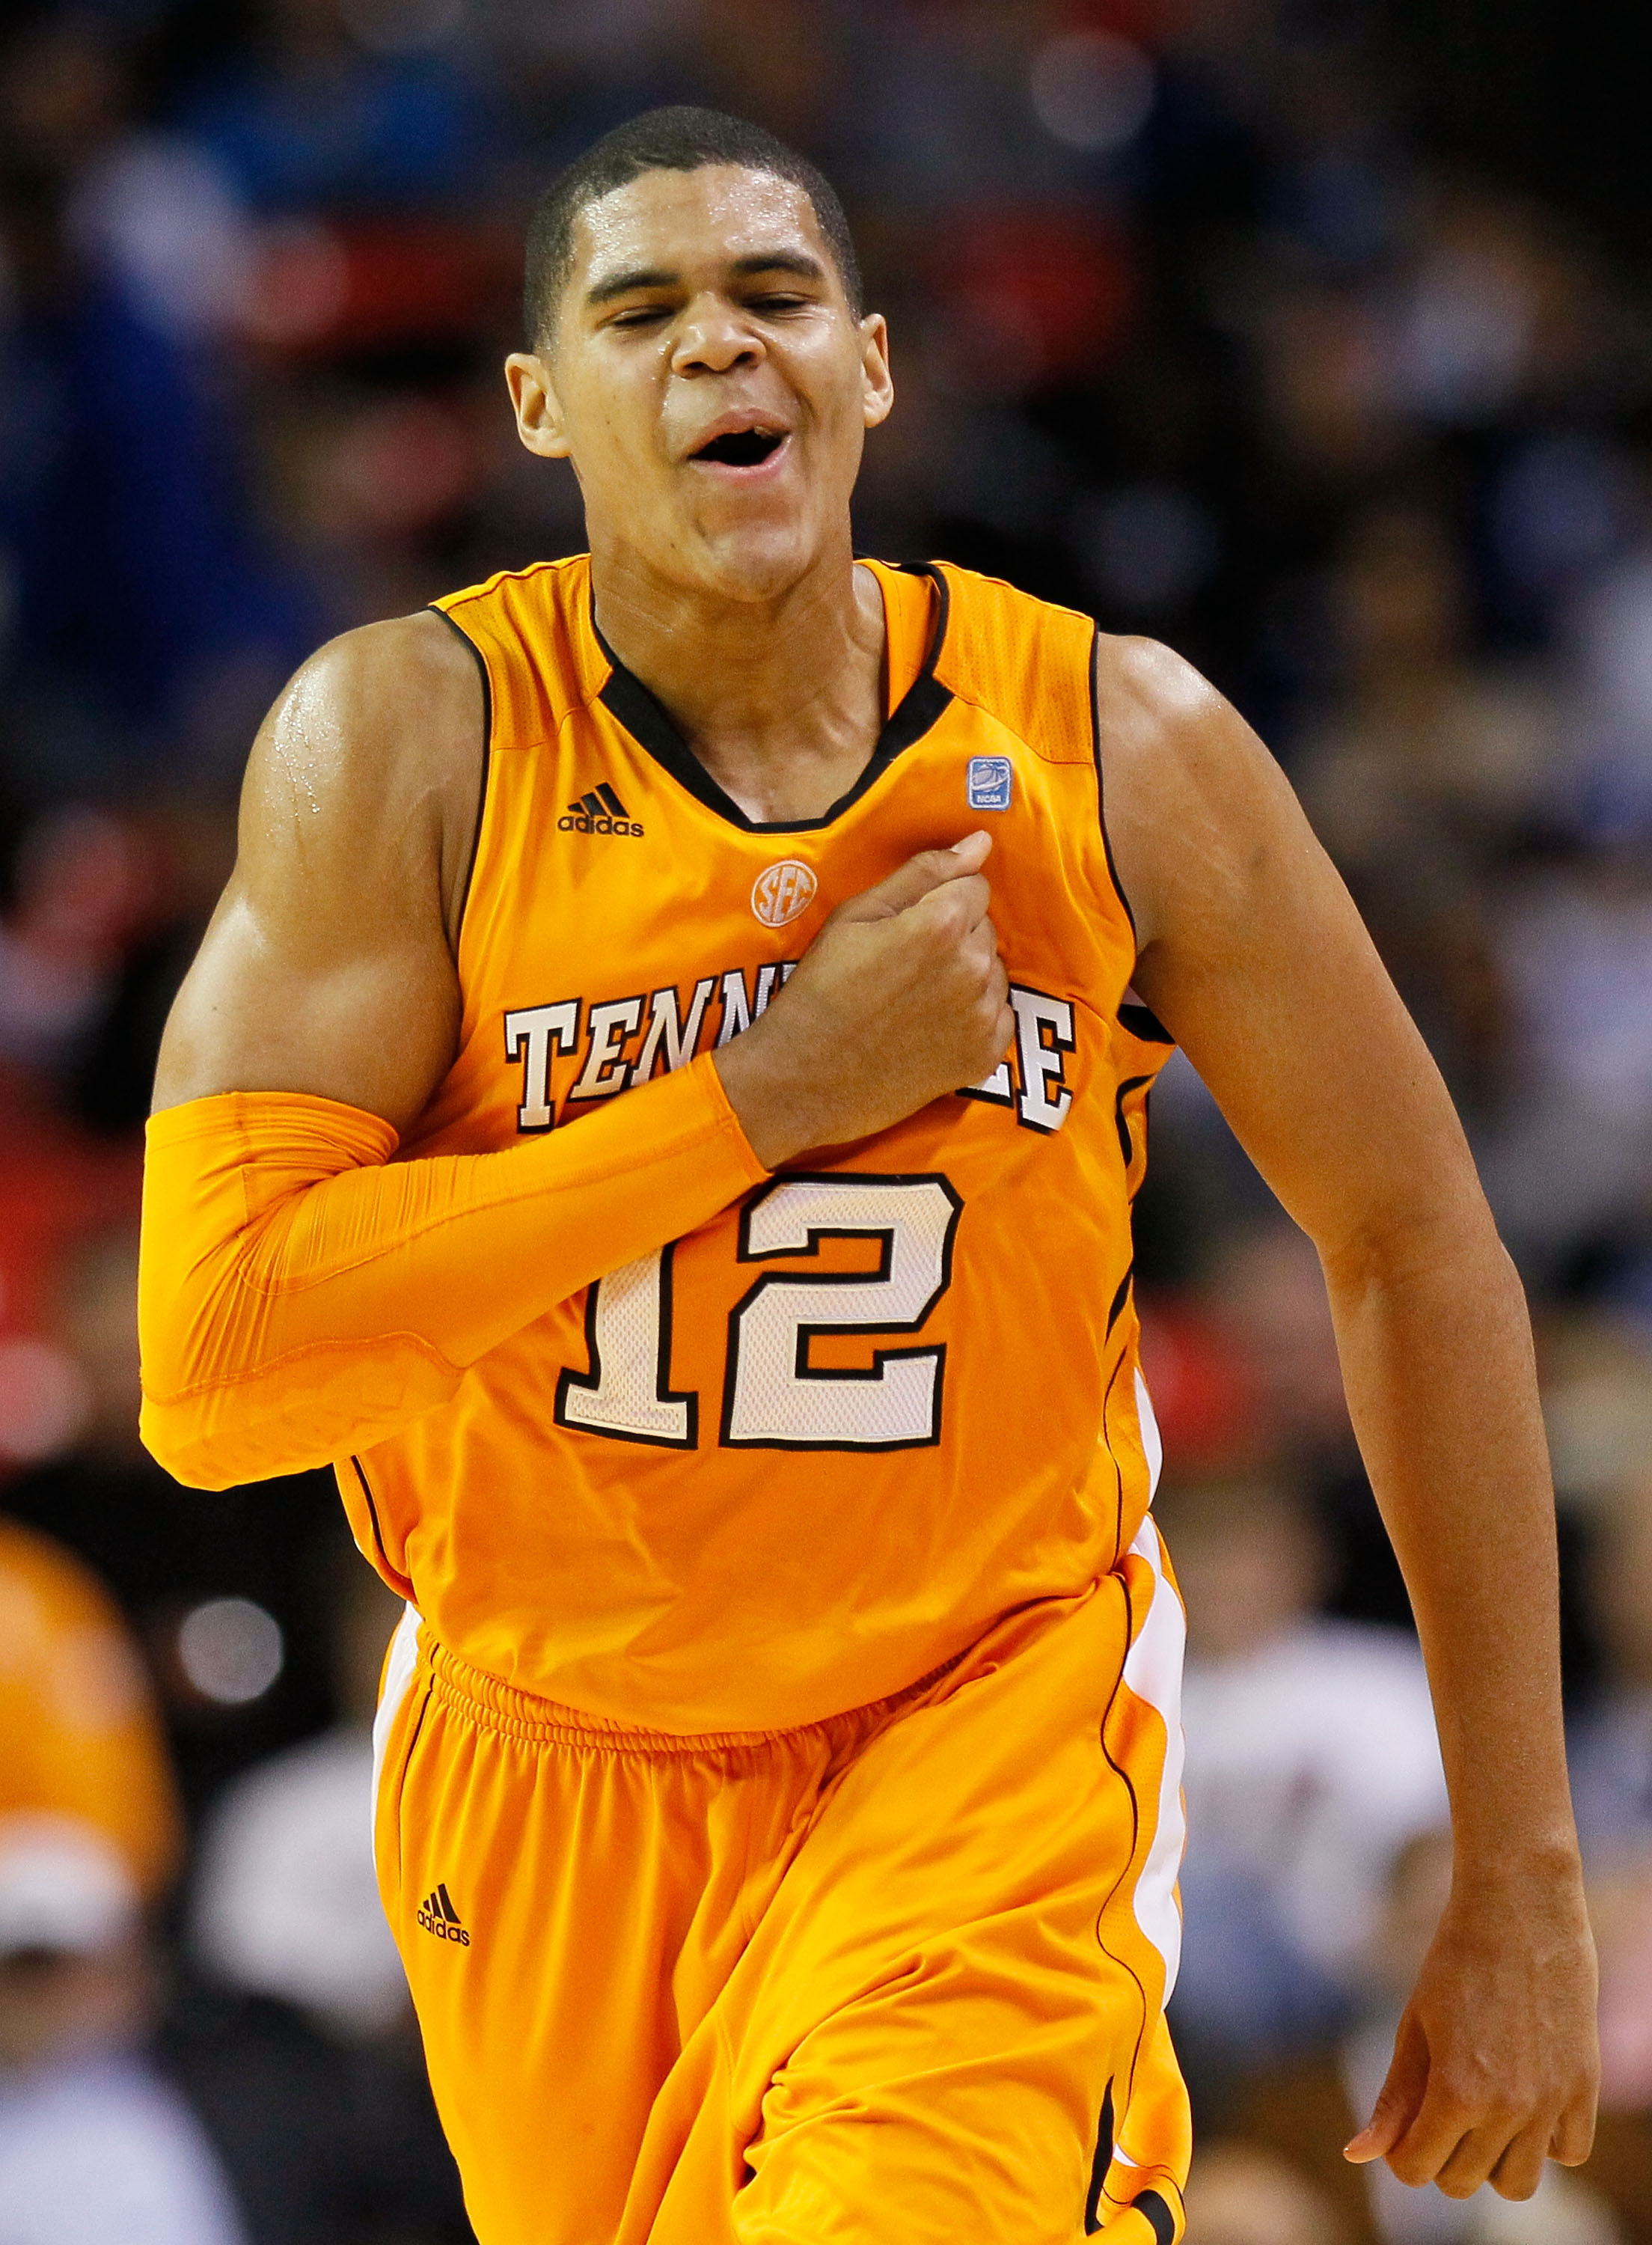 ATLANTA, GA - MARCH 11:  Tobias Harris #12 of the Tennessee Volunteers celebrates after scoring a three pointer against the Florida Gators during the quarterfinals of the SEC Men's Basketball Tournament at Georgia Dome on March 11, 2011 in Atlanta, Georgi